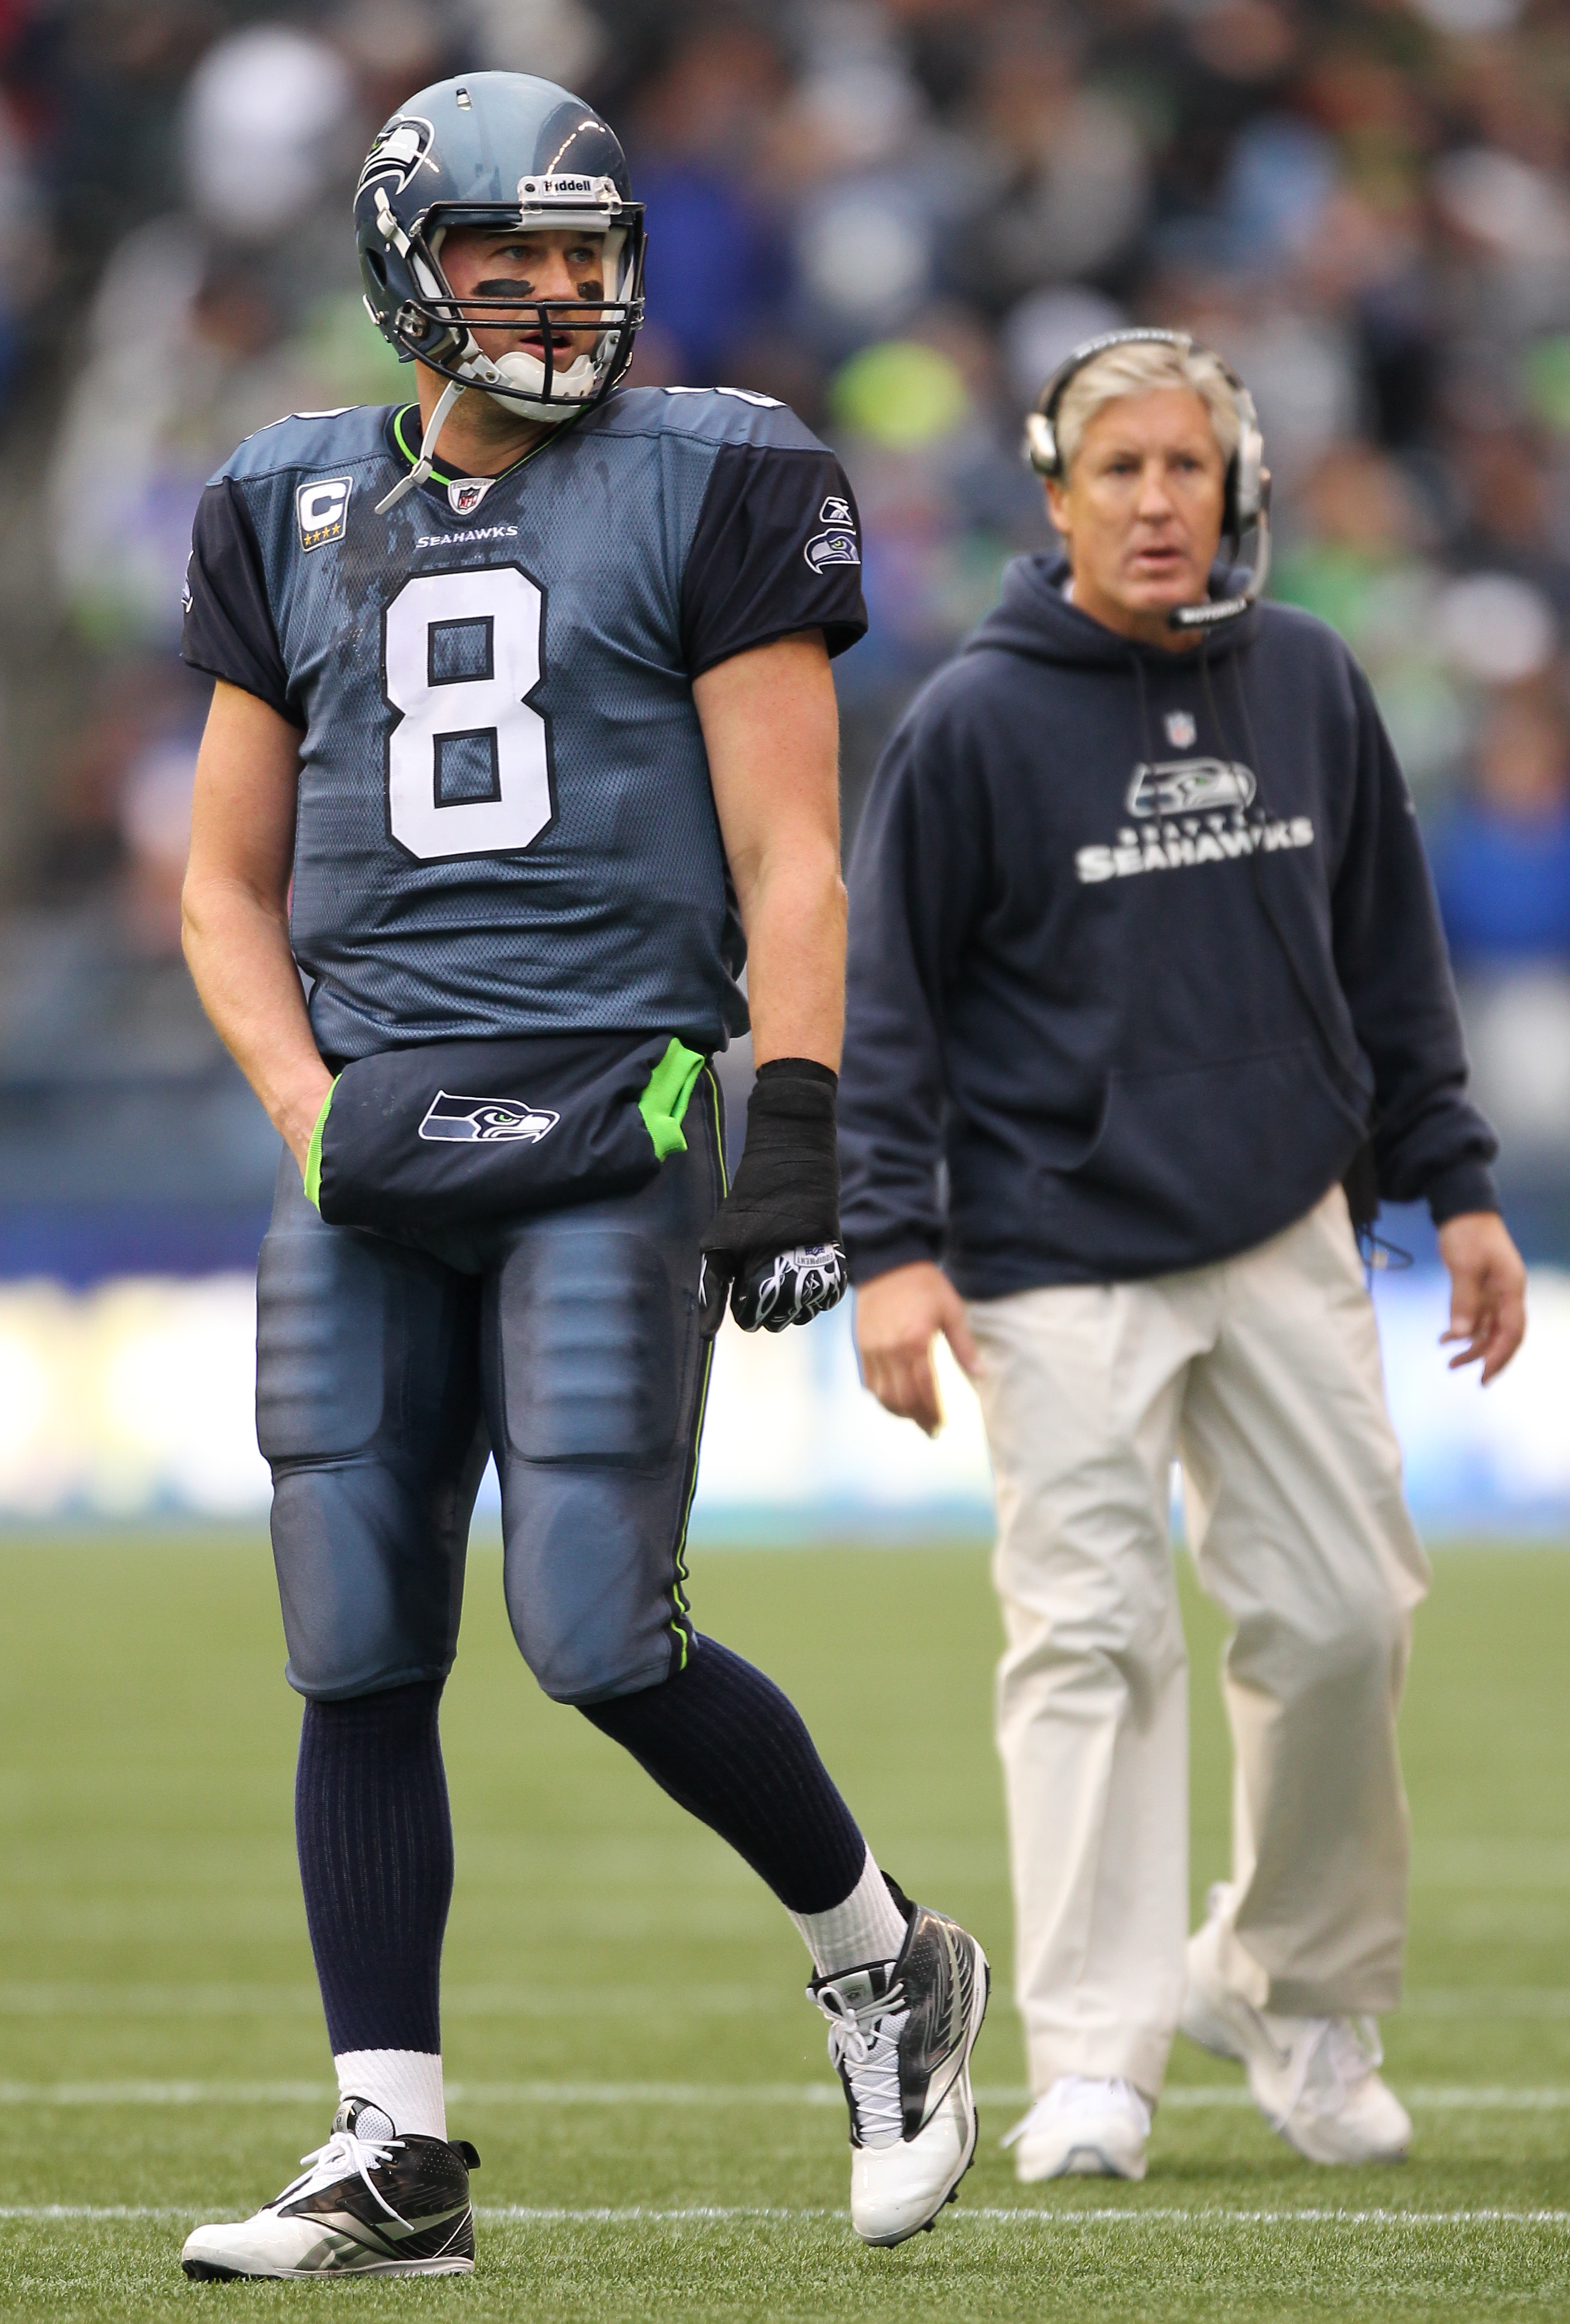 SEATTLE - DECEMBER 05:  Quarterback Matt Hasselbeck #8 of the Seattle Seahawks heads back to the huddle as head coach Pete Carroll looks on during a timeout in the game against the Carolina Panthers at Qwest Field on December 5, 2010 in Seattle, Washingto